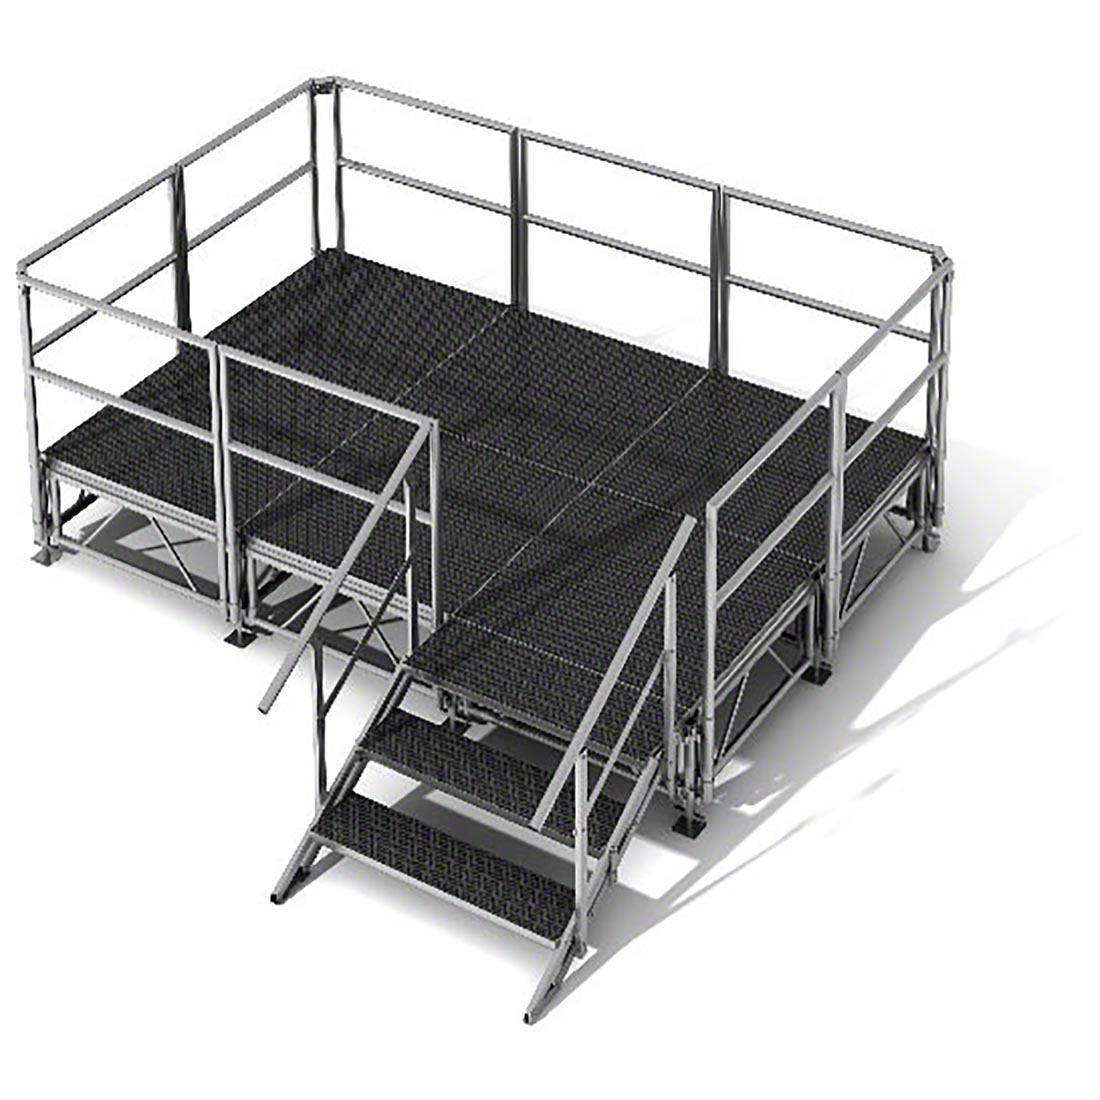 All-Terrain Outdoor Stages